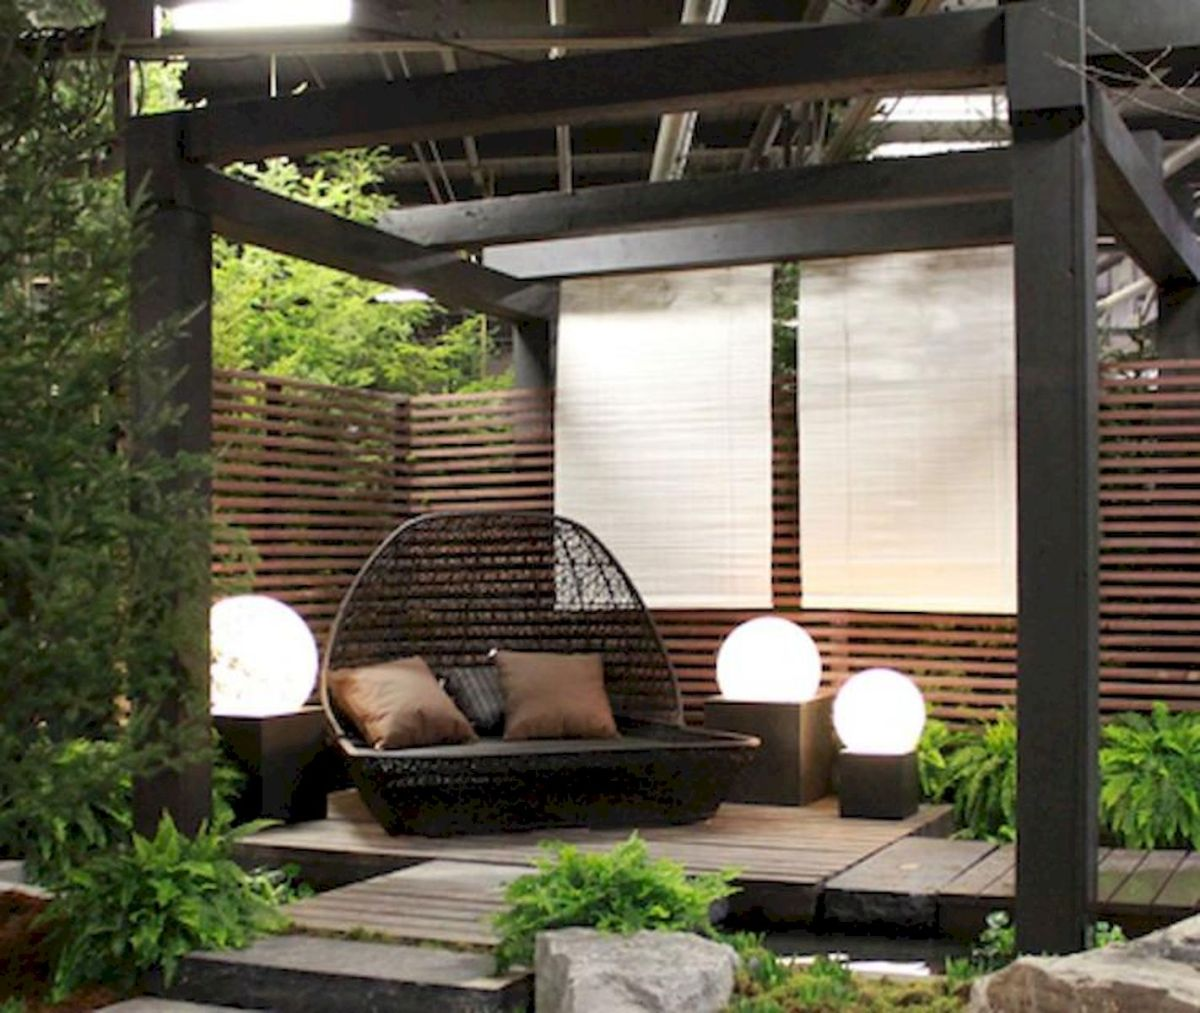 60 Awesome Backyard Privacy Design and Decor Ideas (29)